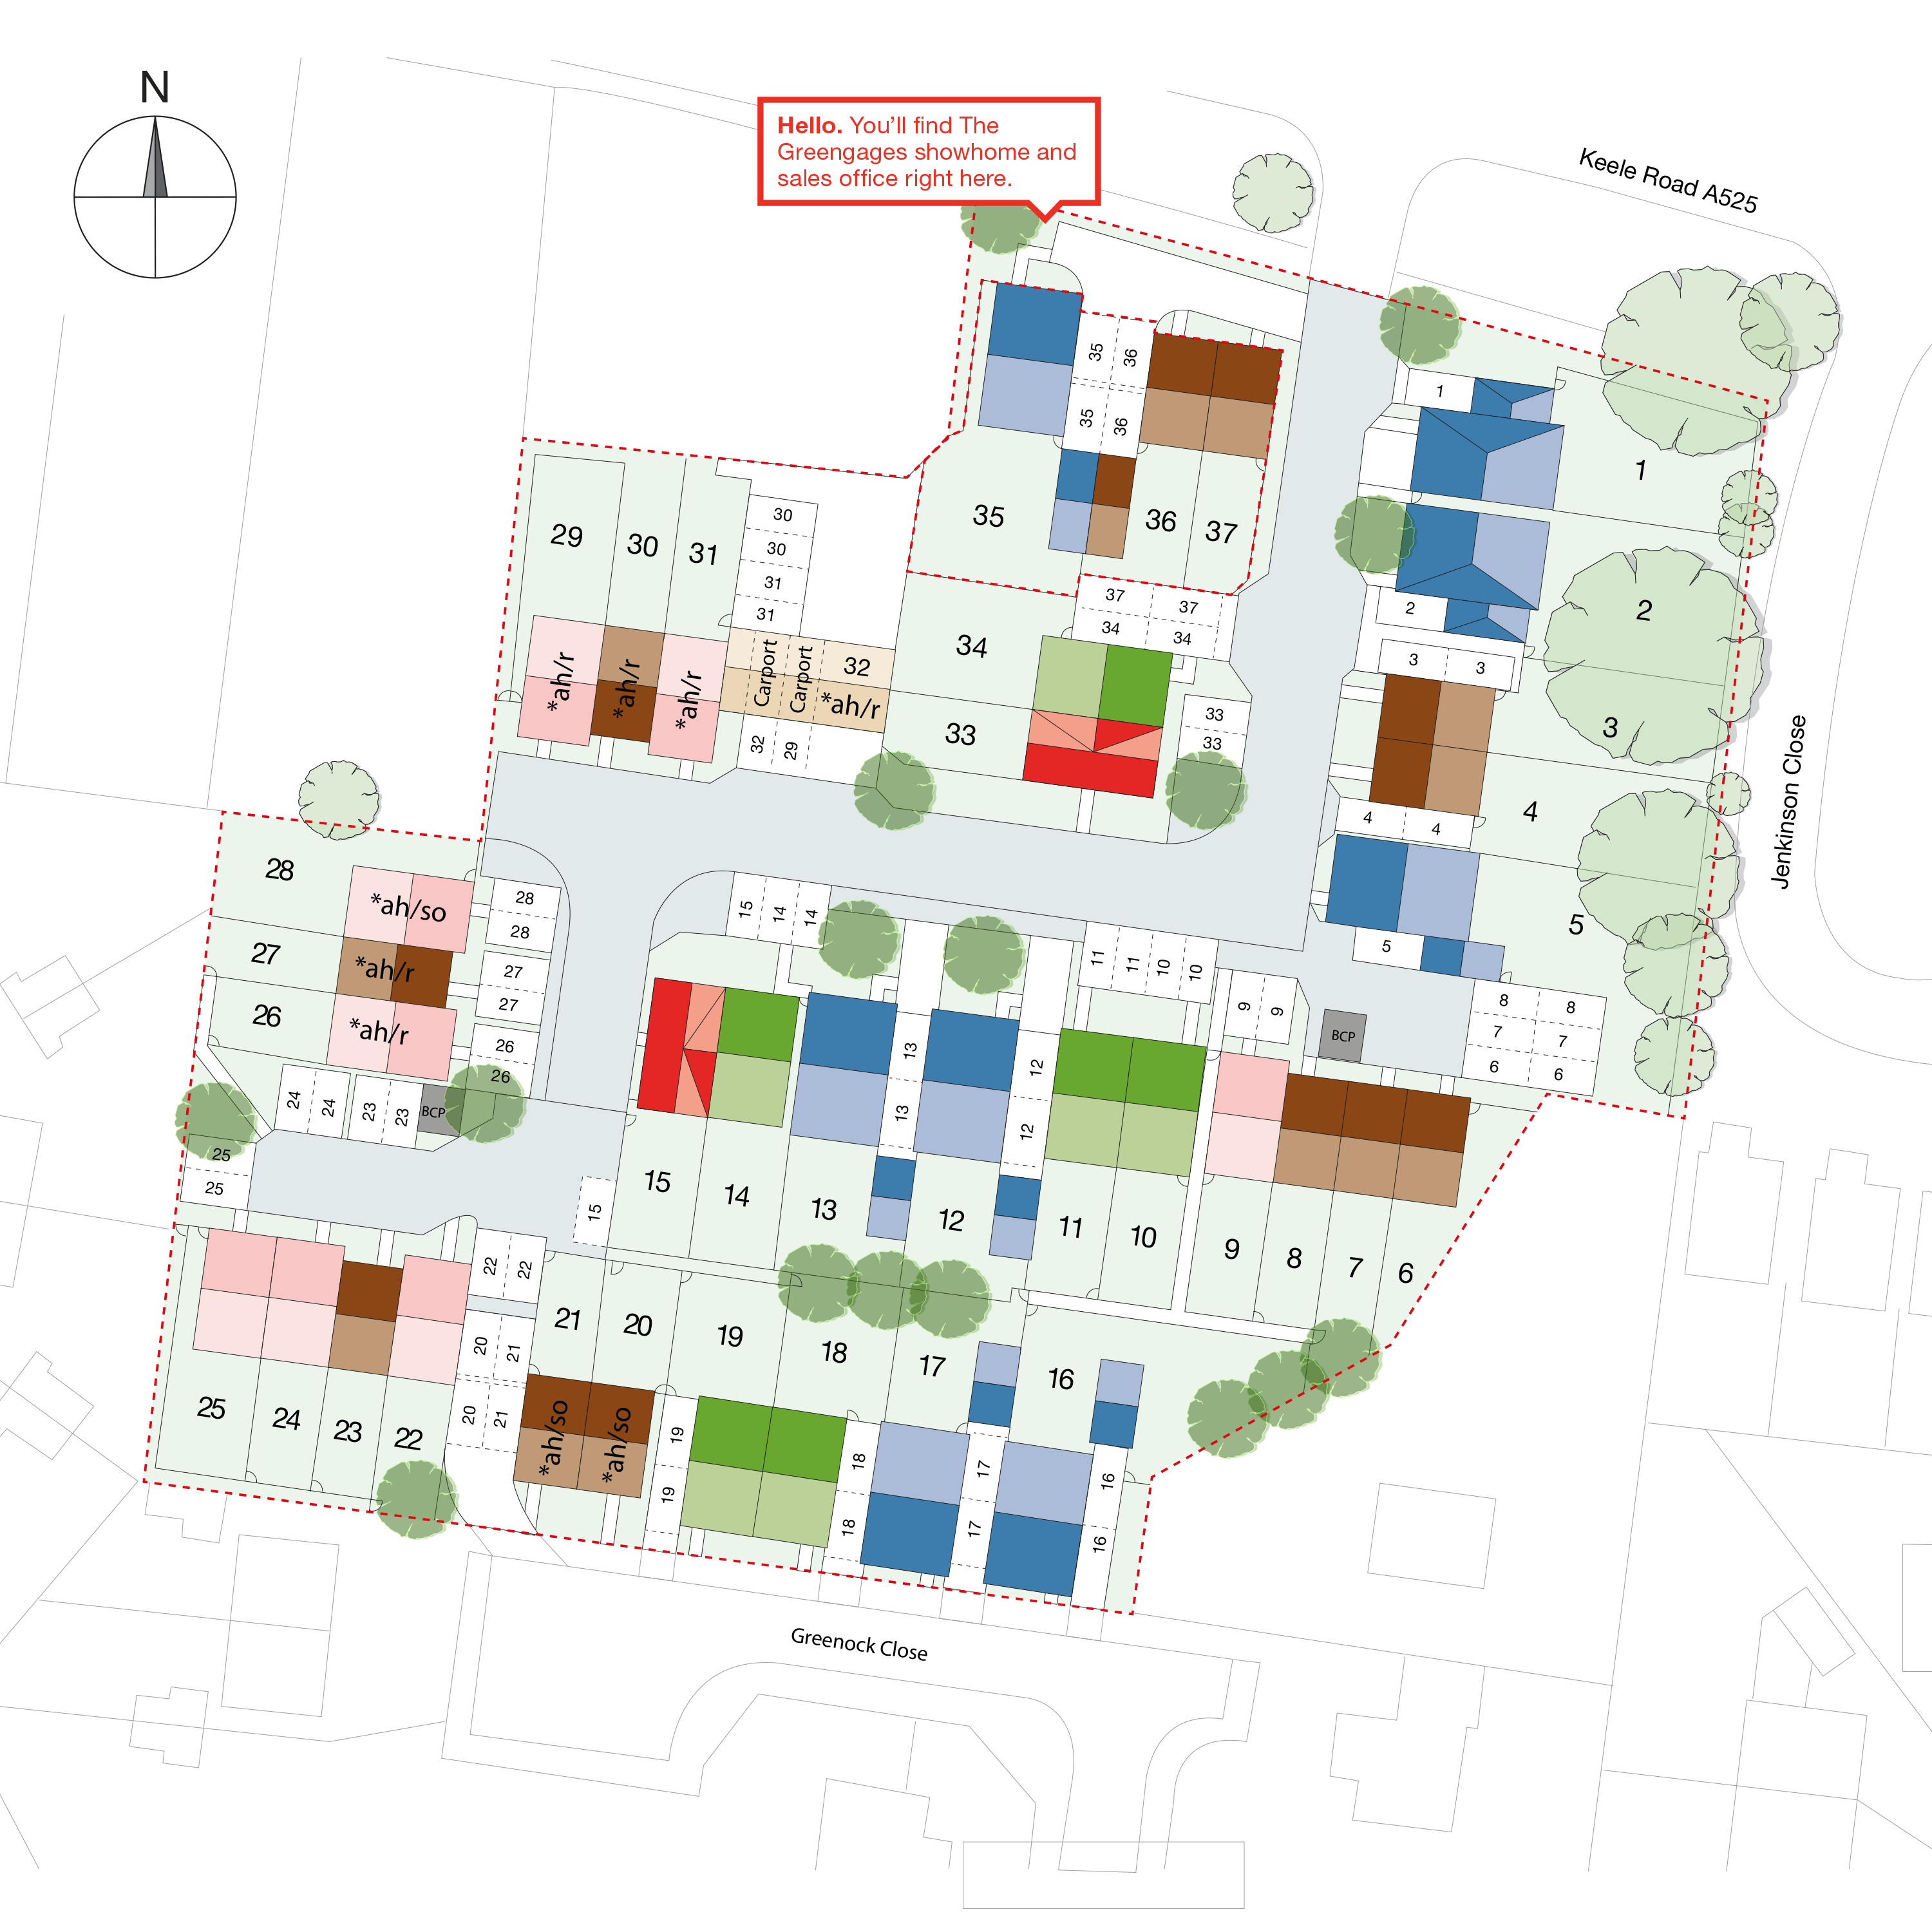 33688_TWNM-Greengages-siteplan